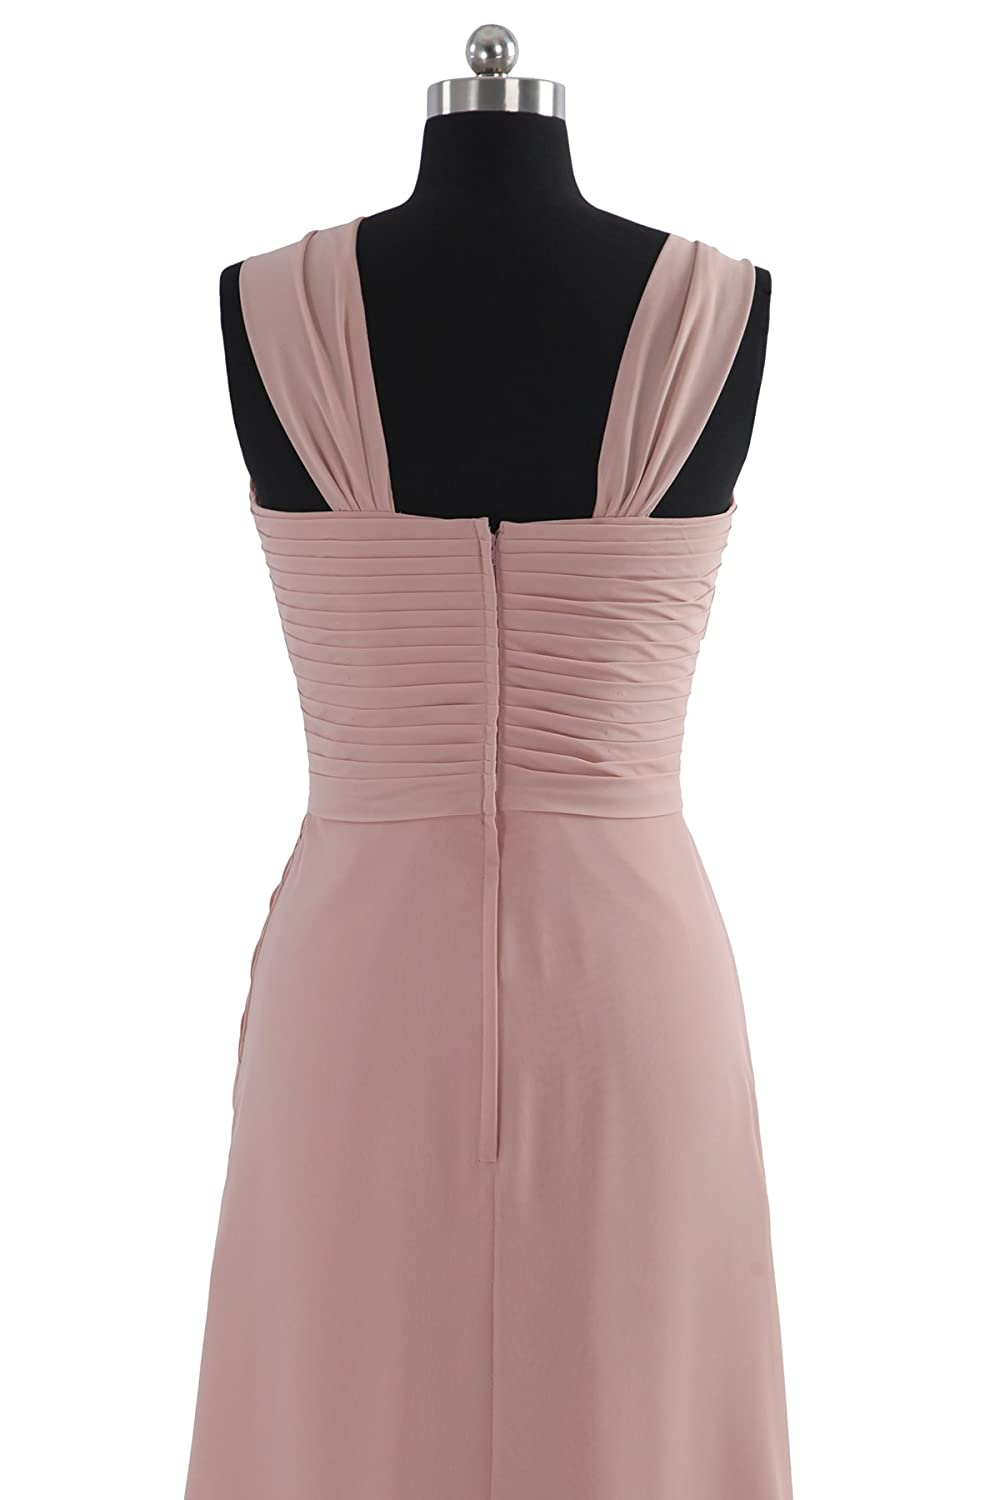 COCOMELODY Womens Halter Long Chiffon Bridesmaid Dresses COZF14020 Size: 10 Color: Pale Pink: Amazon.co.uk: Clothing